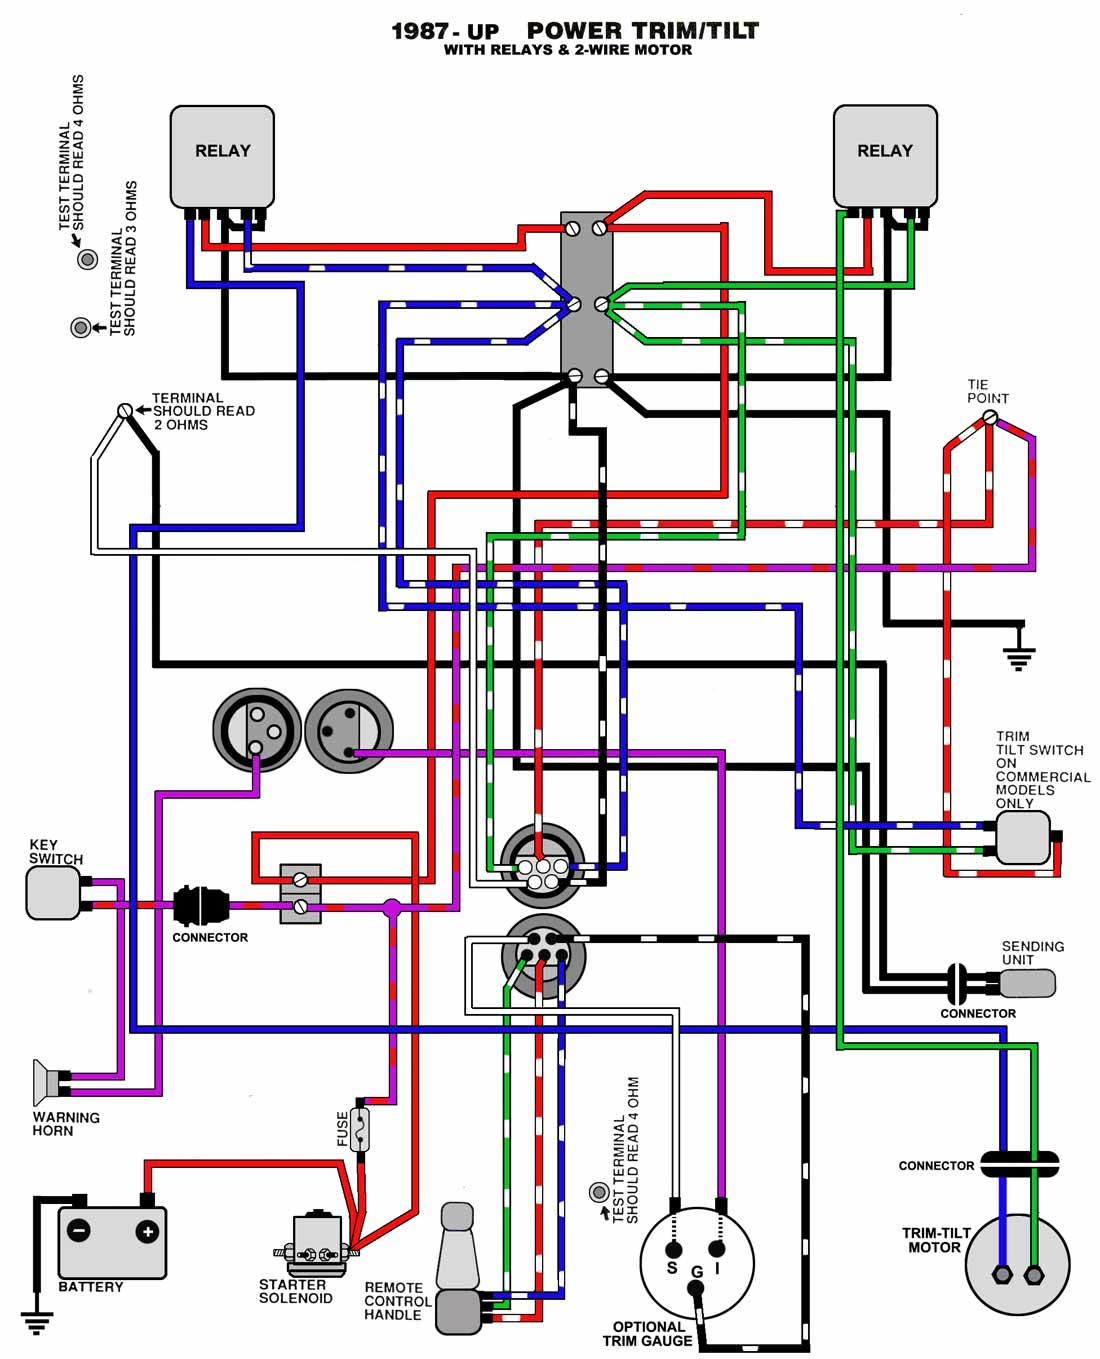 TnT_87_UP mastertech marine evinrude johnson outboard wiring diagrams 3 wire tilt trim wiring diagram at reclaimingppi.co